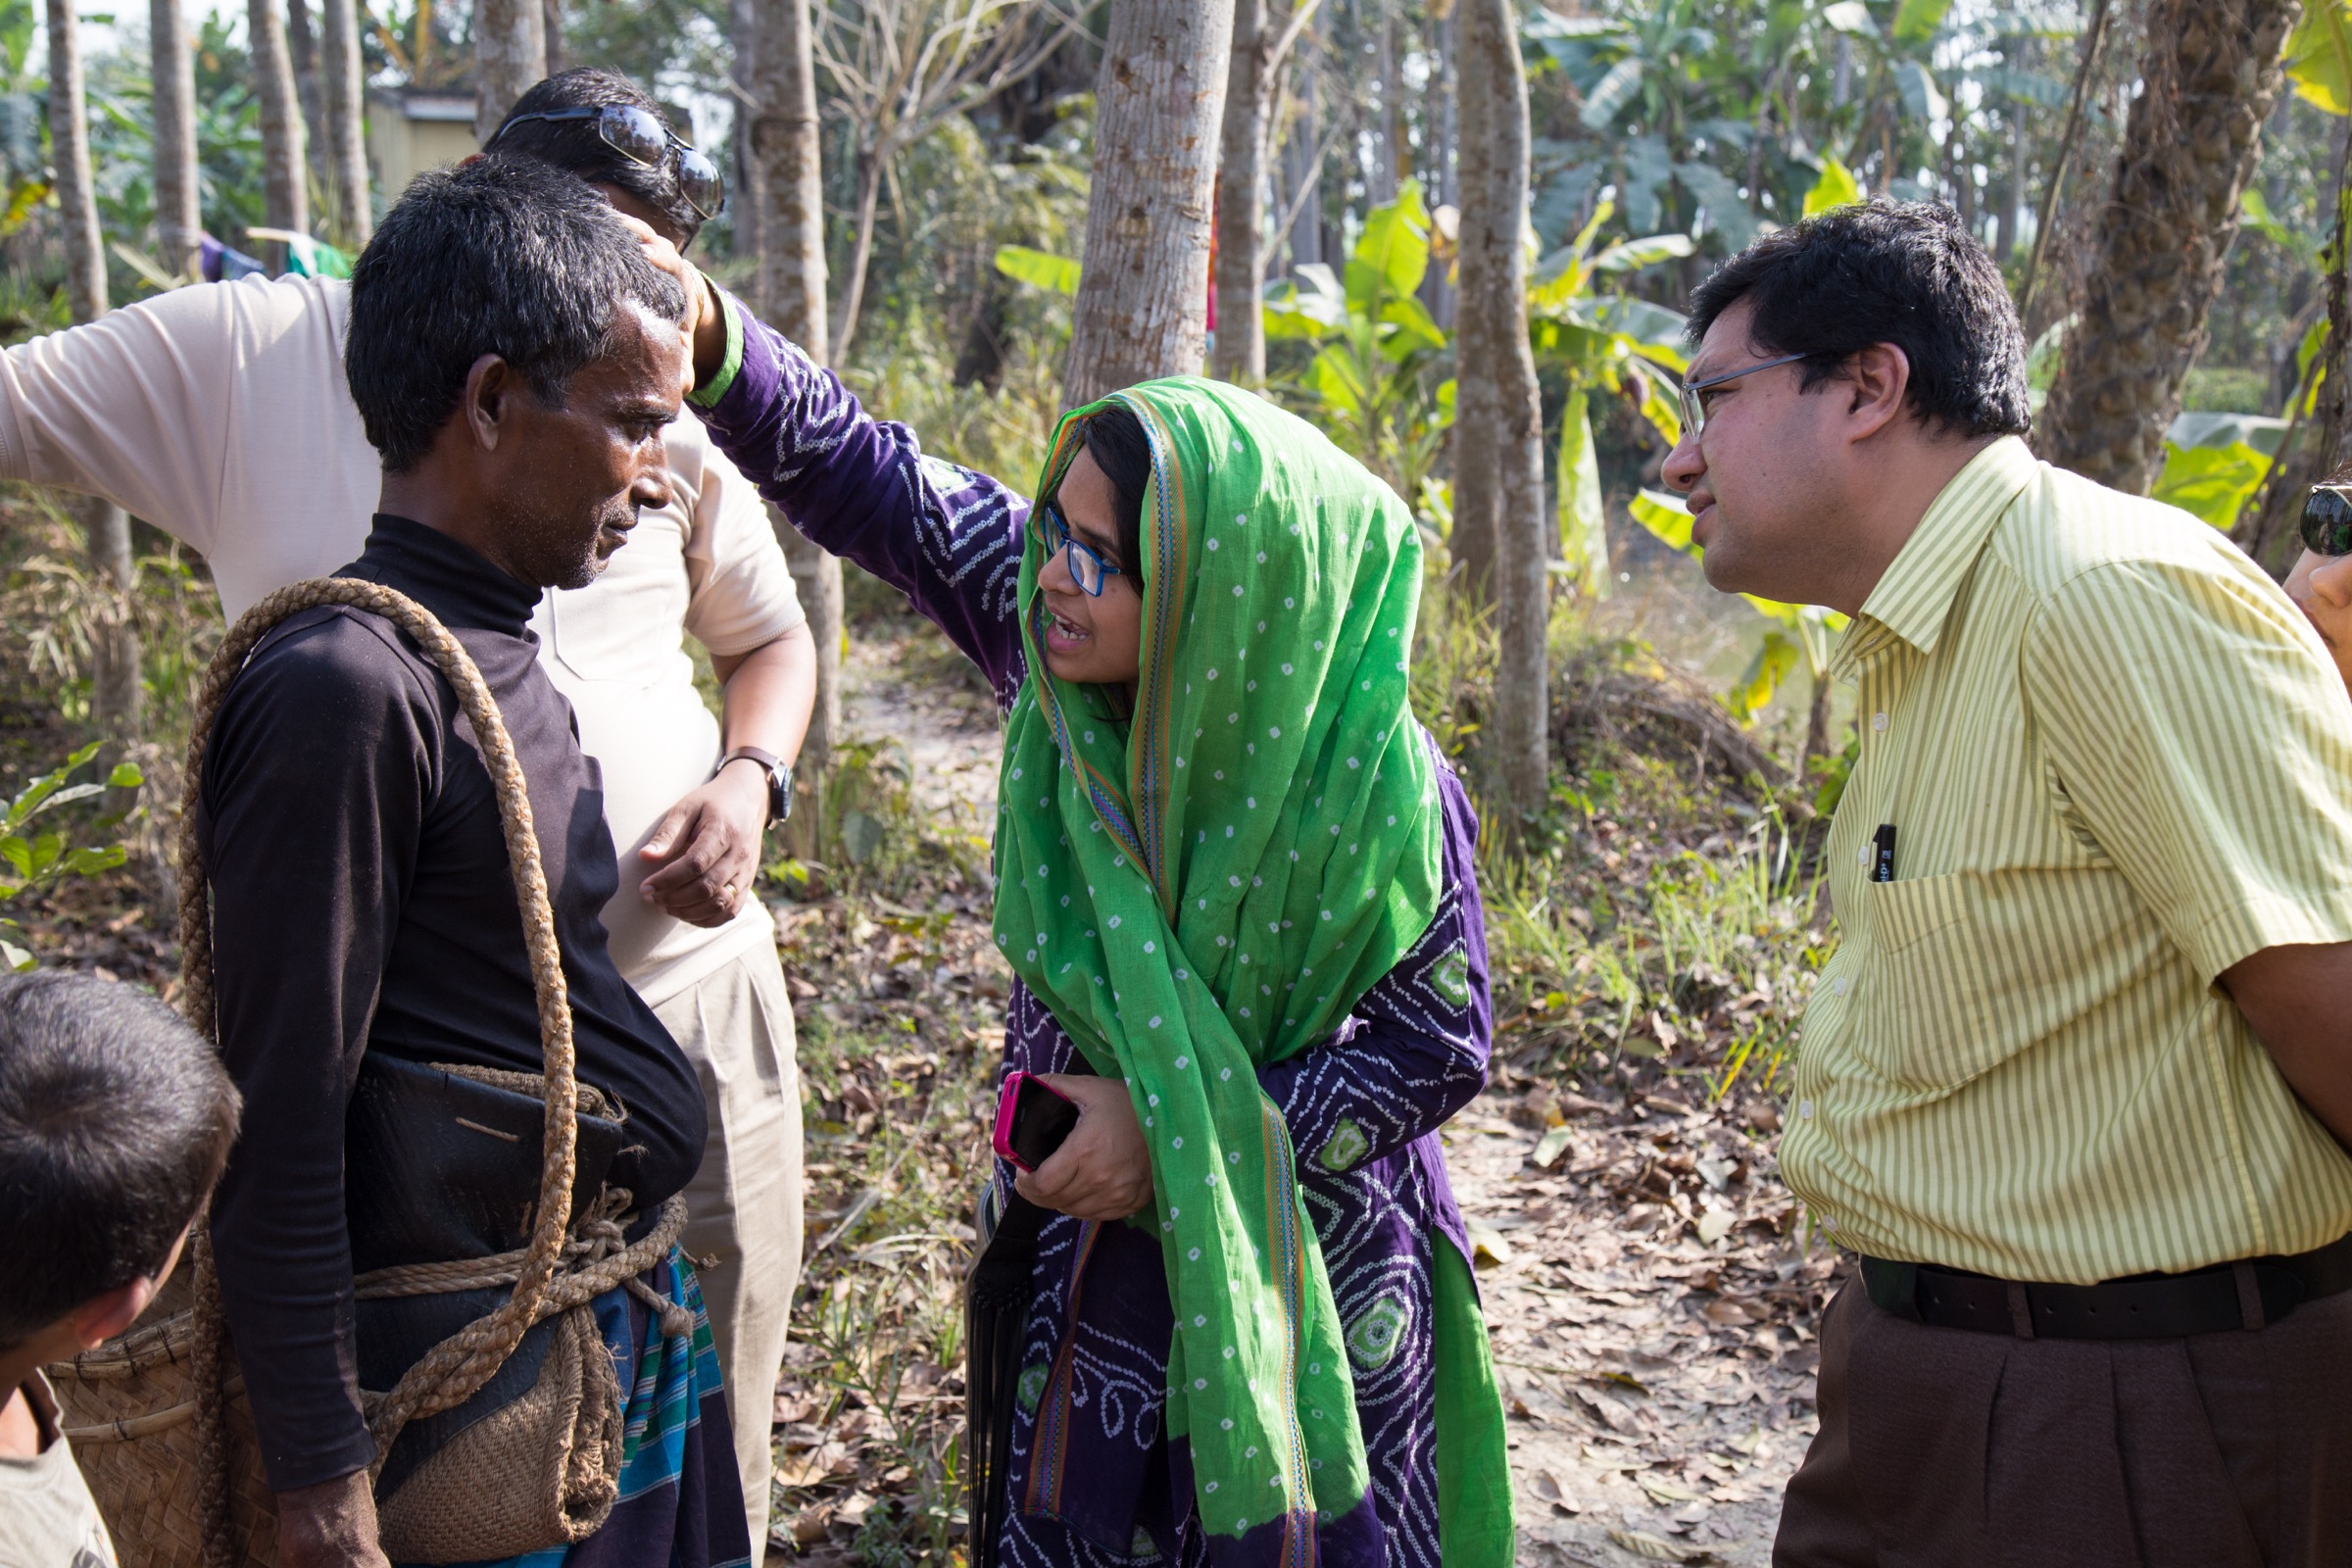 Arifa Nazneen and Hossain M. S. Sazzad, members of ICDDR,B Nipah surveillance team, conduct a physical examination of a gachhi in Bangladesh's Faridpur District. Photograph by Steven Bedard